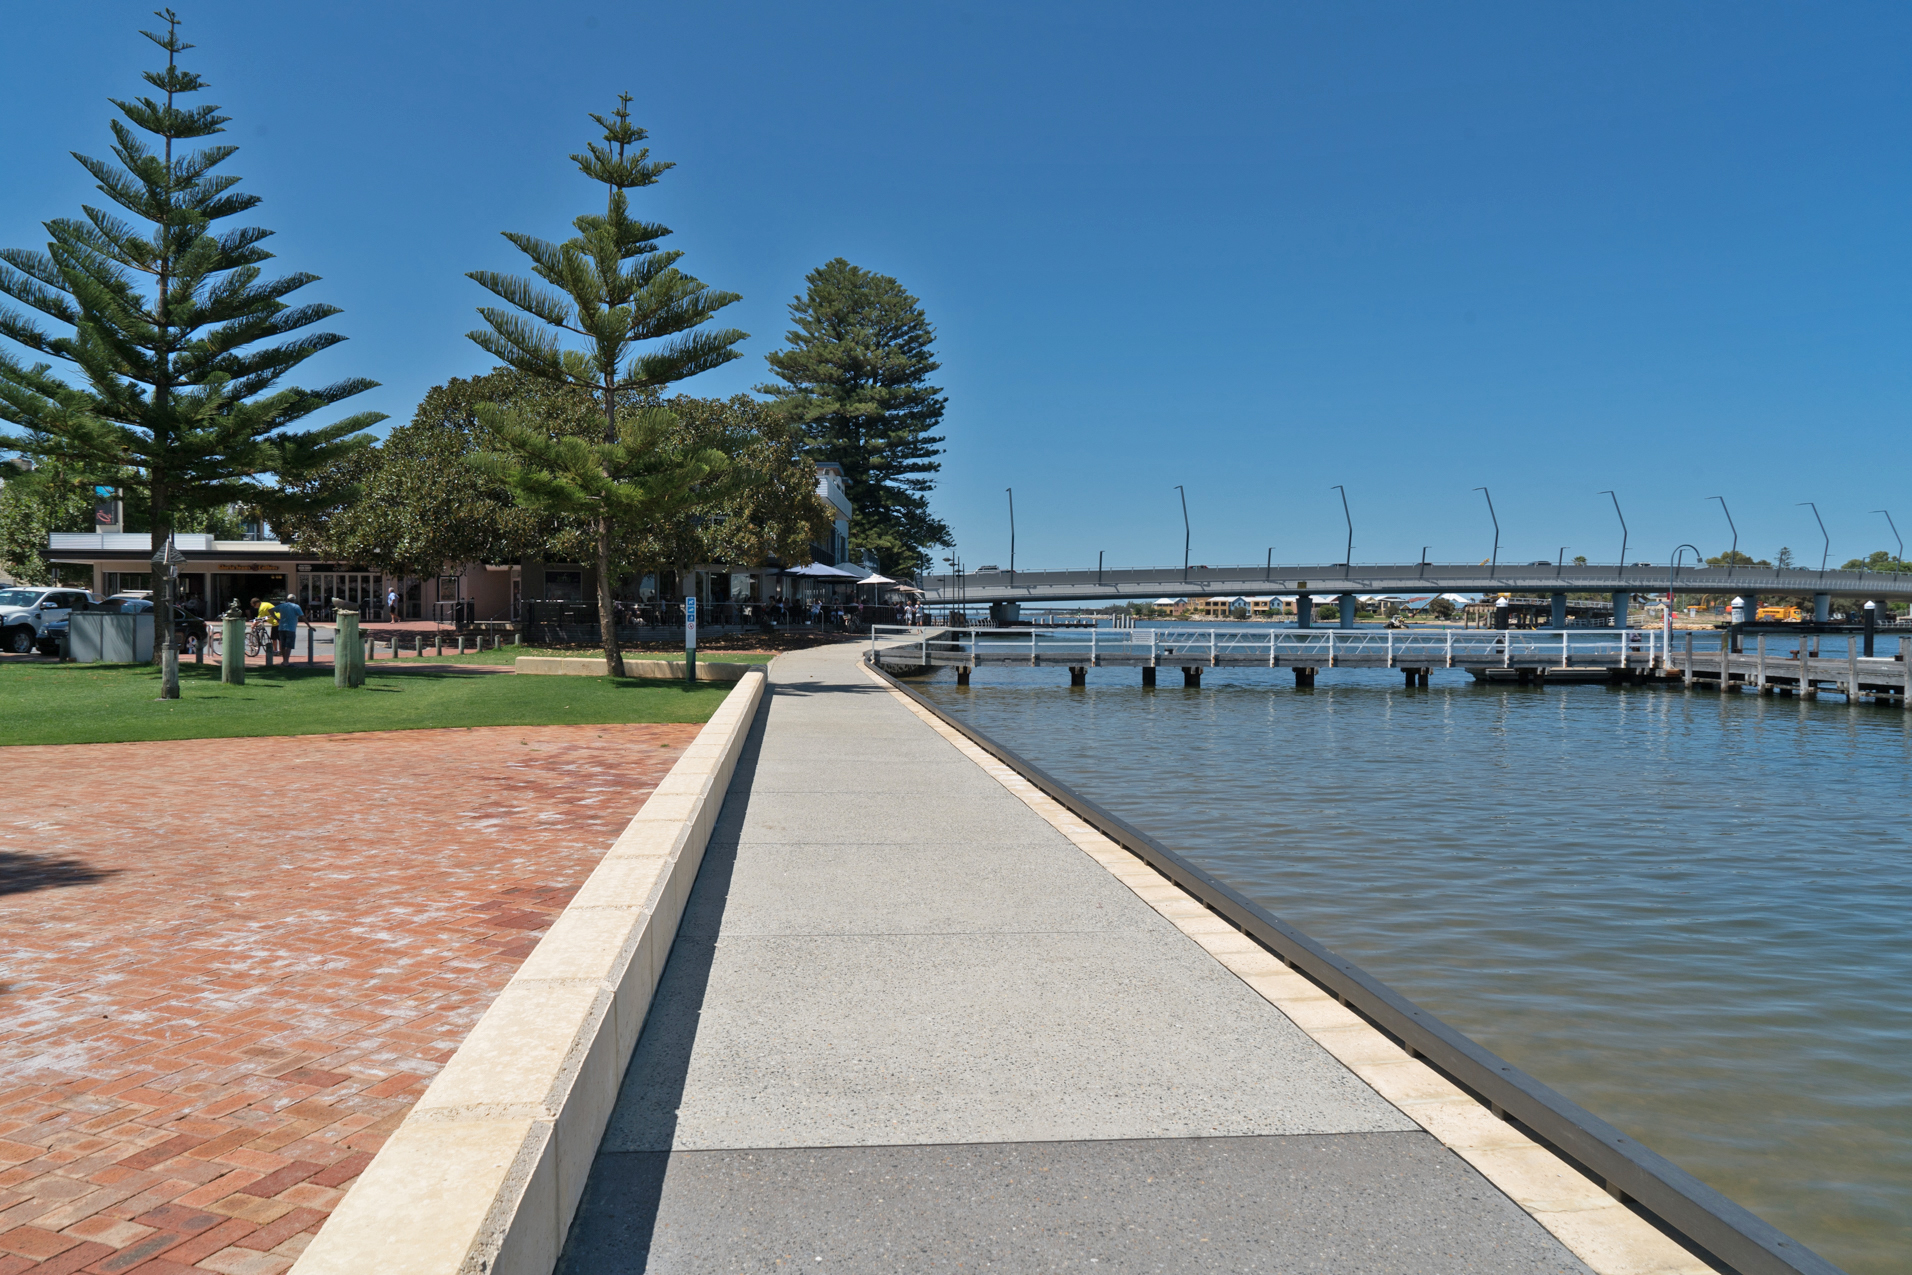 Plate 7: Near the end of the main Mandurah Foreshore, with shopping area/cafes and bridge